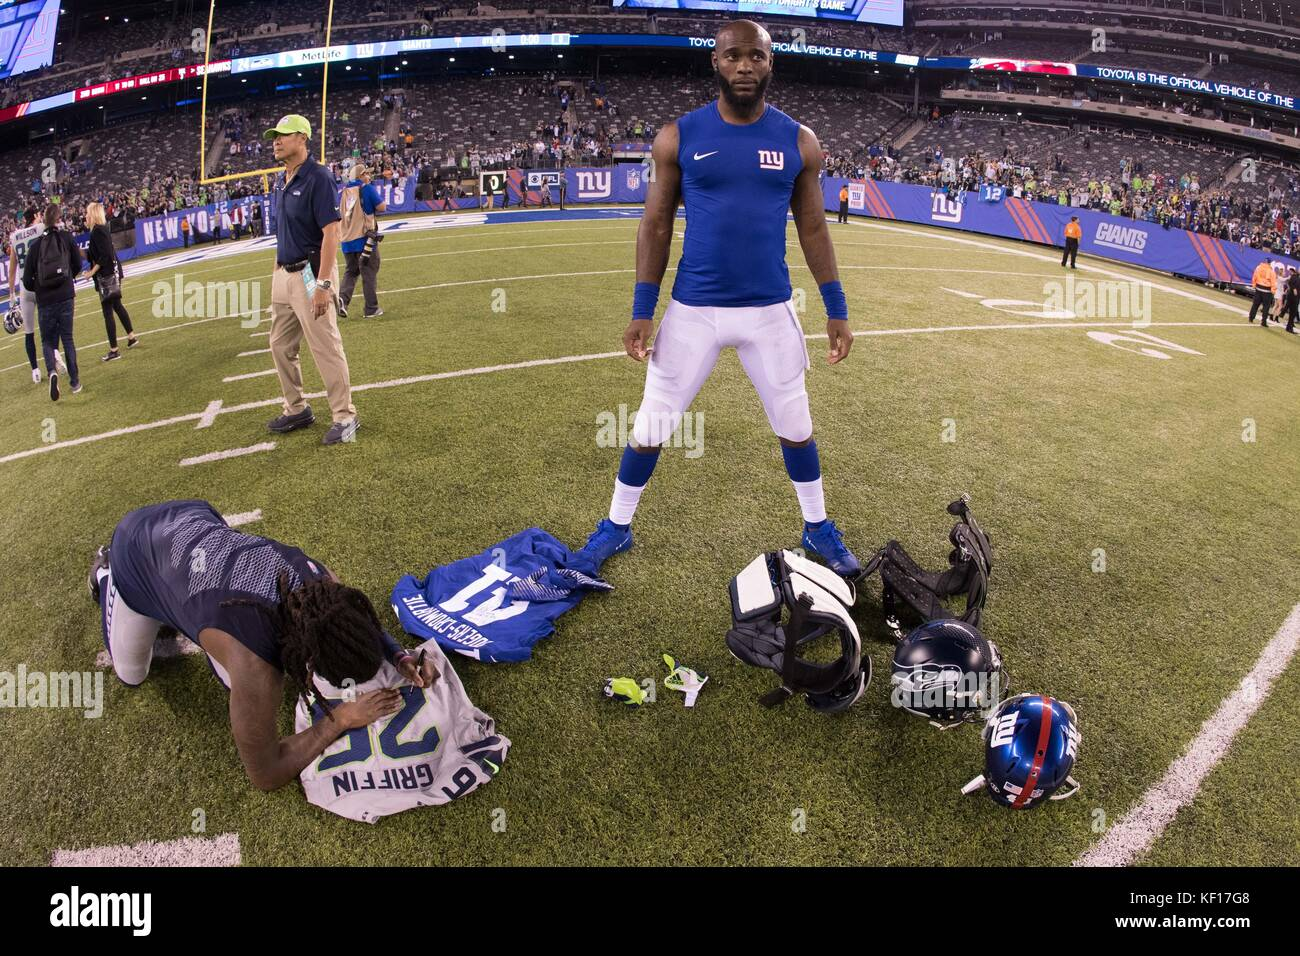 East Rutherford, New Jersey, USA. 22nd Oct, 2017. New York Giants cornerback Dominique Rodgers-Cromartie (41) waits - Stock Image